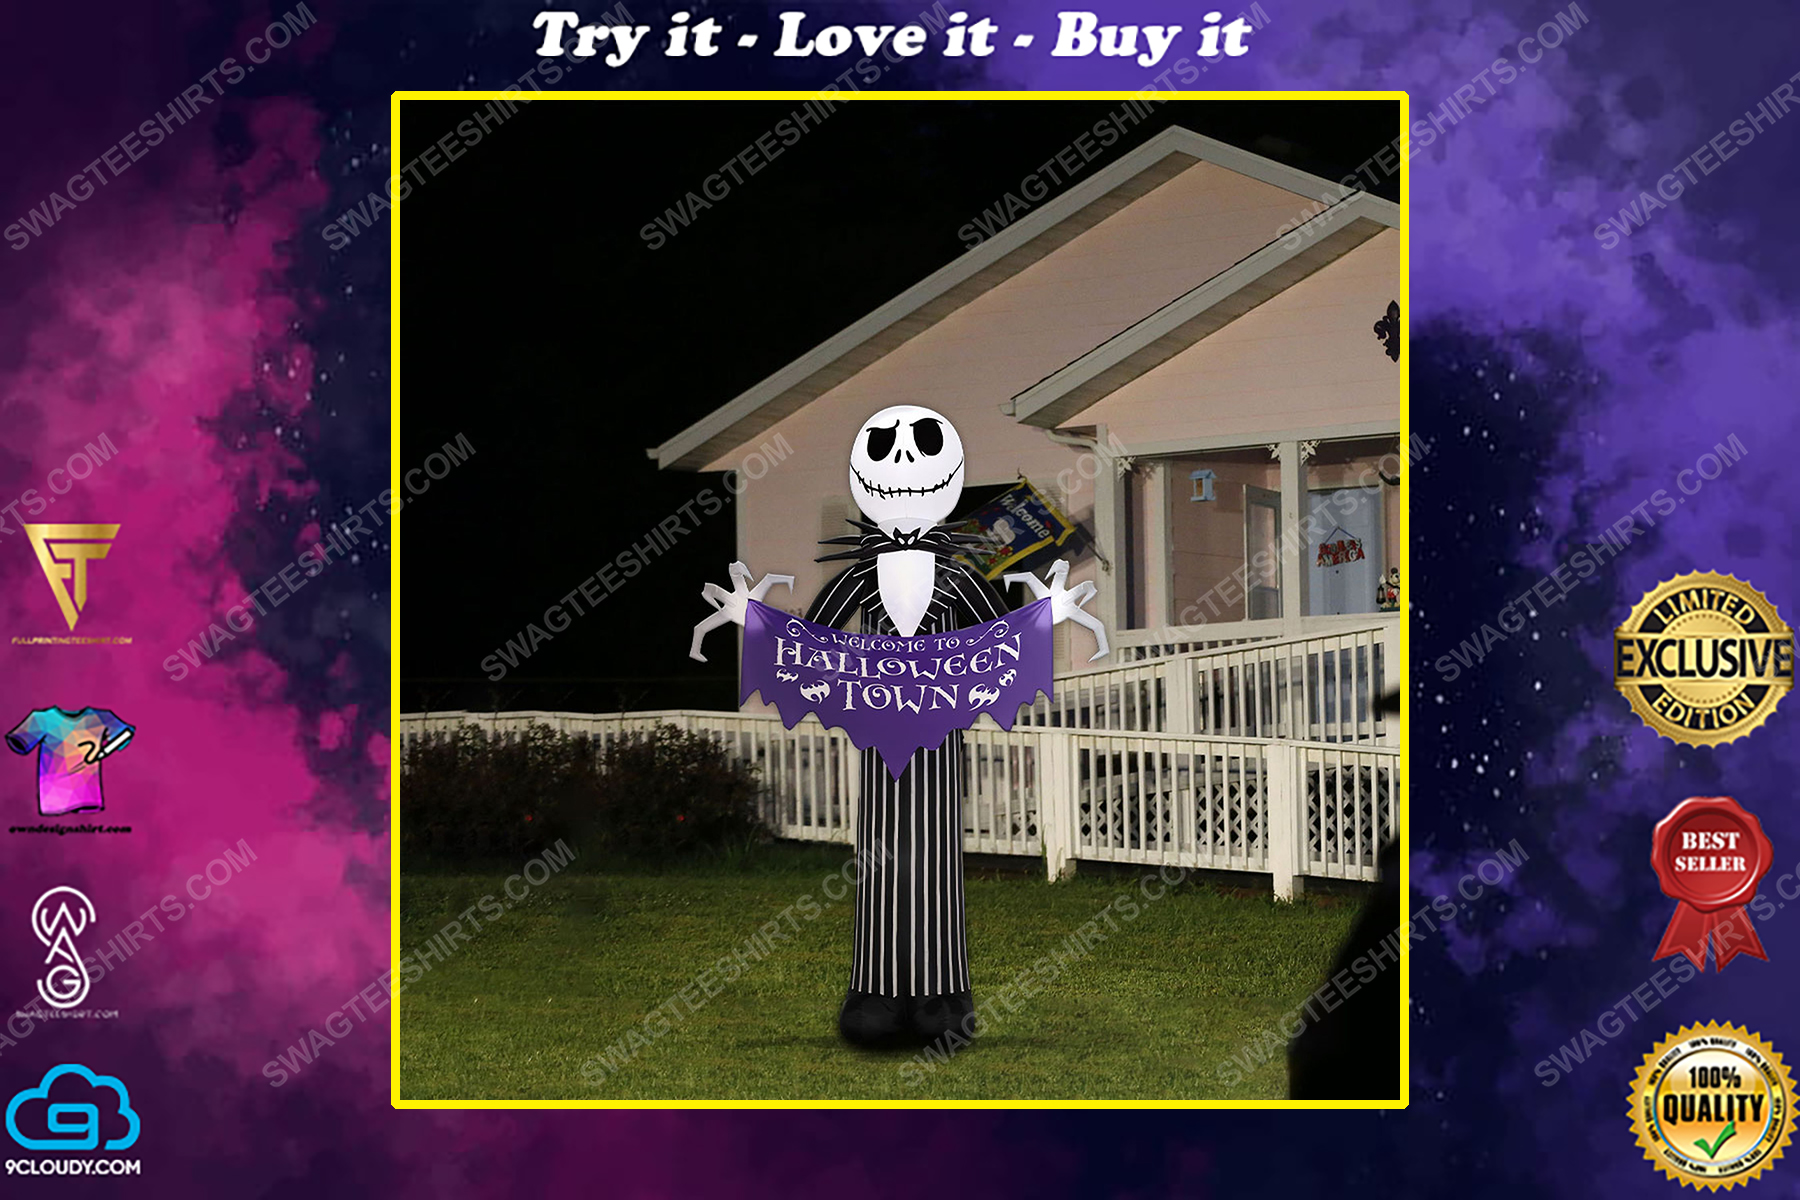 Jack skellington welcome to halloween town yard sign